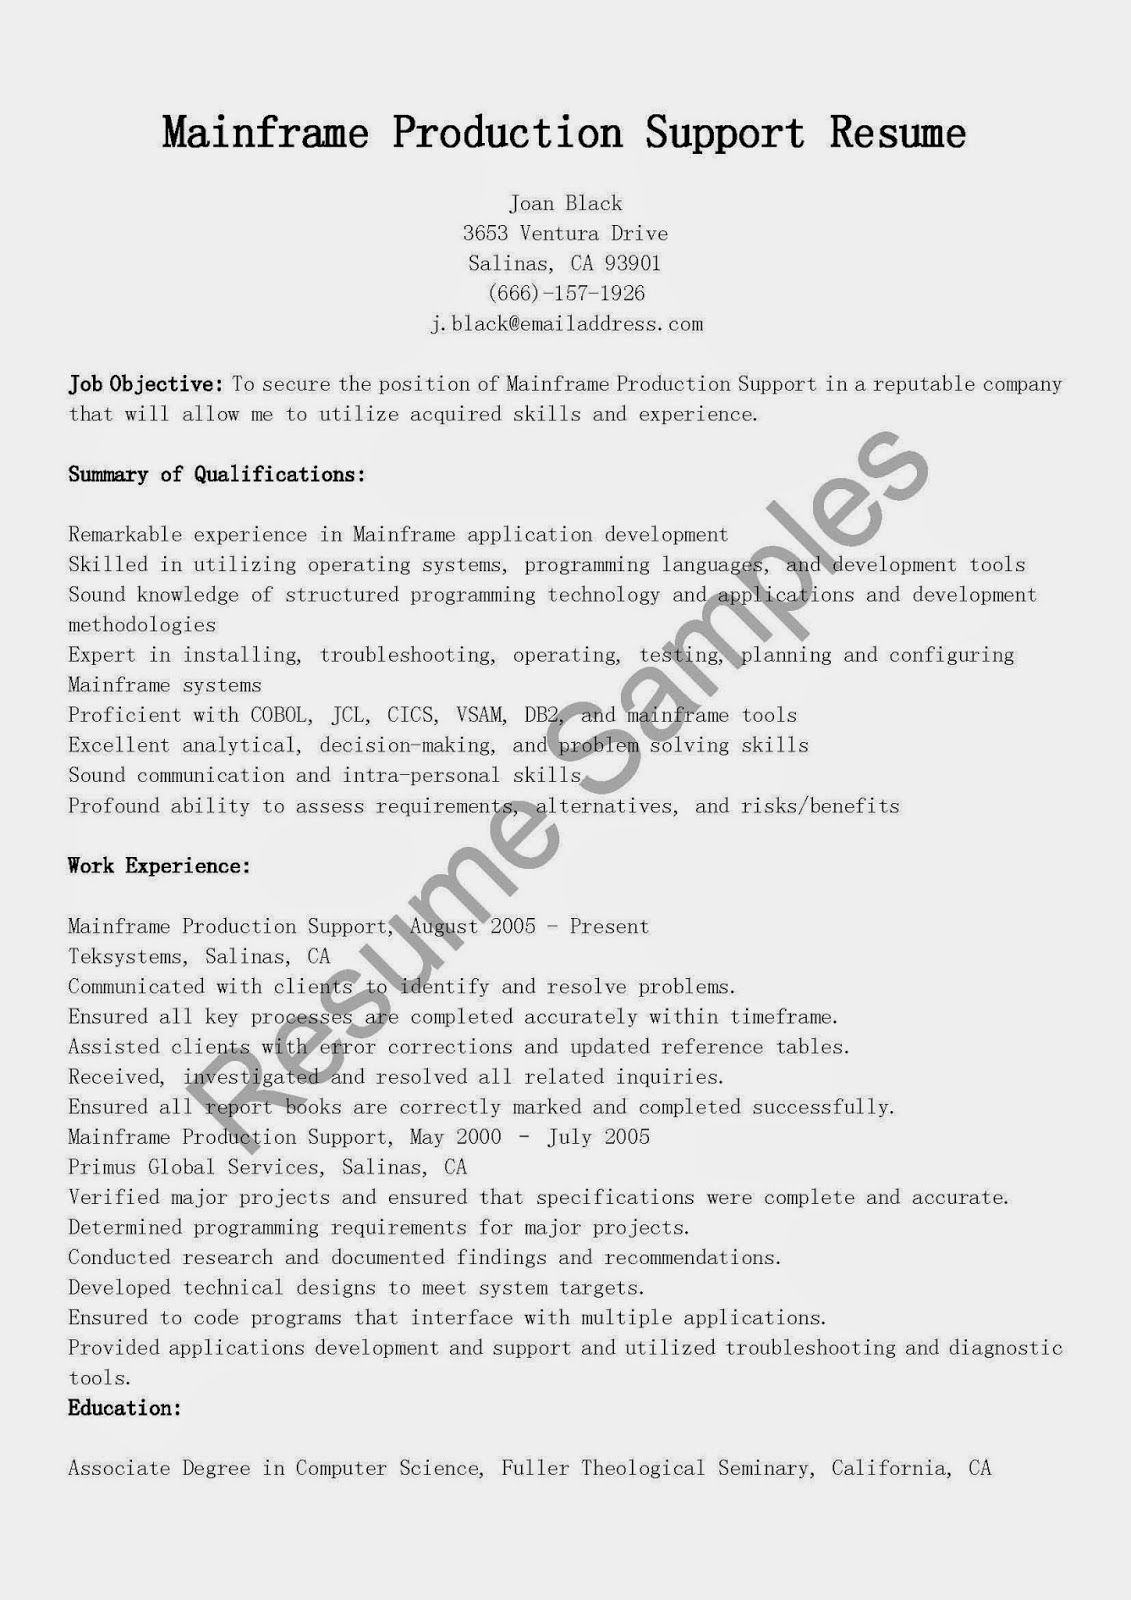 resume Sample Resume For Experienced Mainframe Developer mainframe resume ninja turtletechrepairs co production support sample samples pinterest developer samples